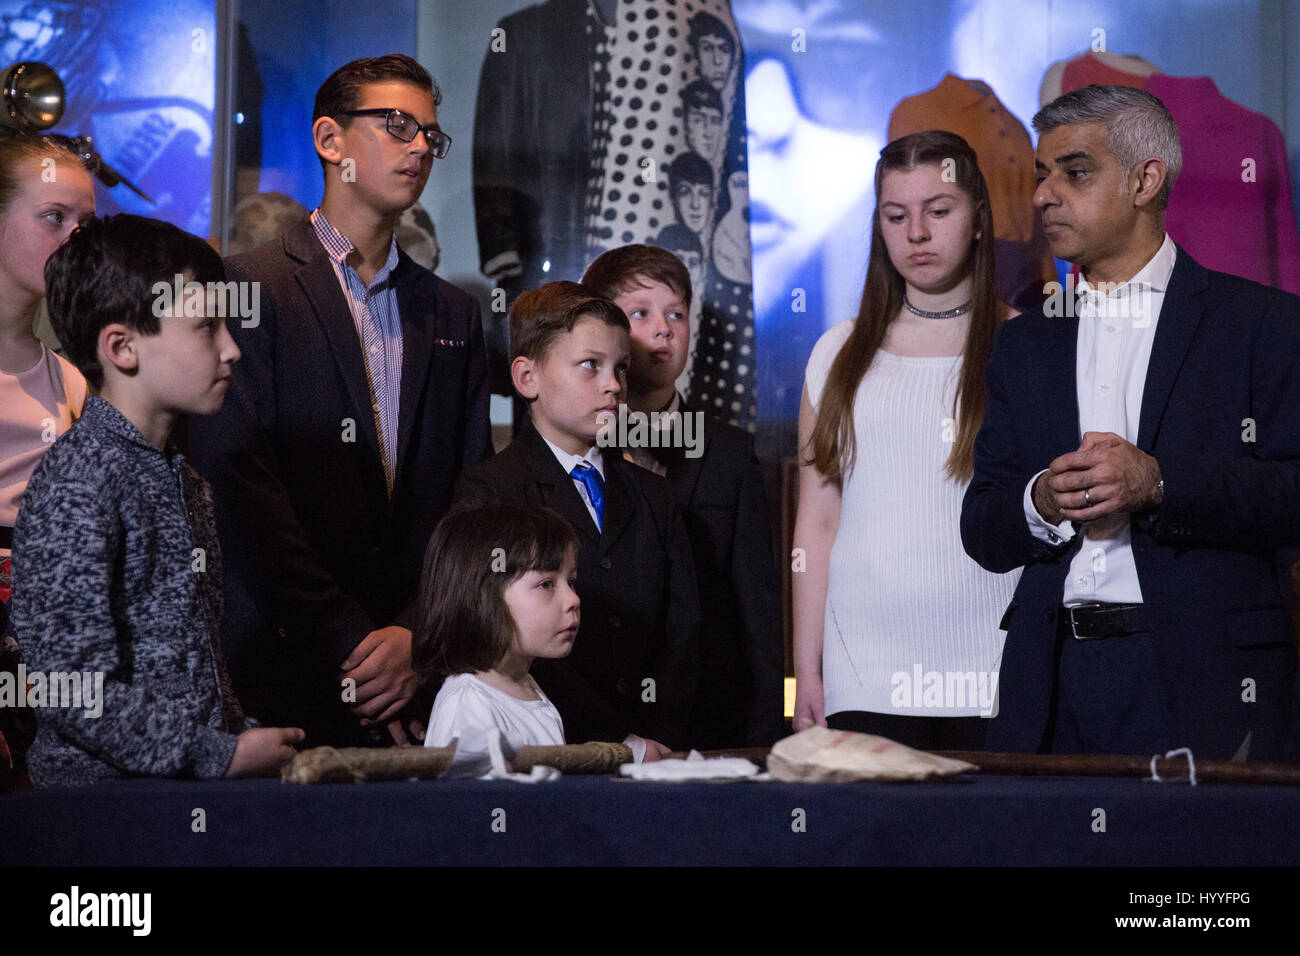 London, UK. 4th April, 2017. Mayor of London Sadiq Khan joins children taking part in a Great Smog workshop at the - Stock Image